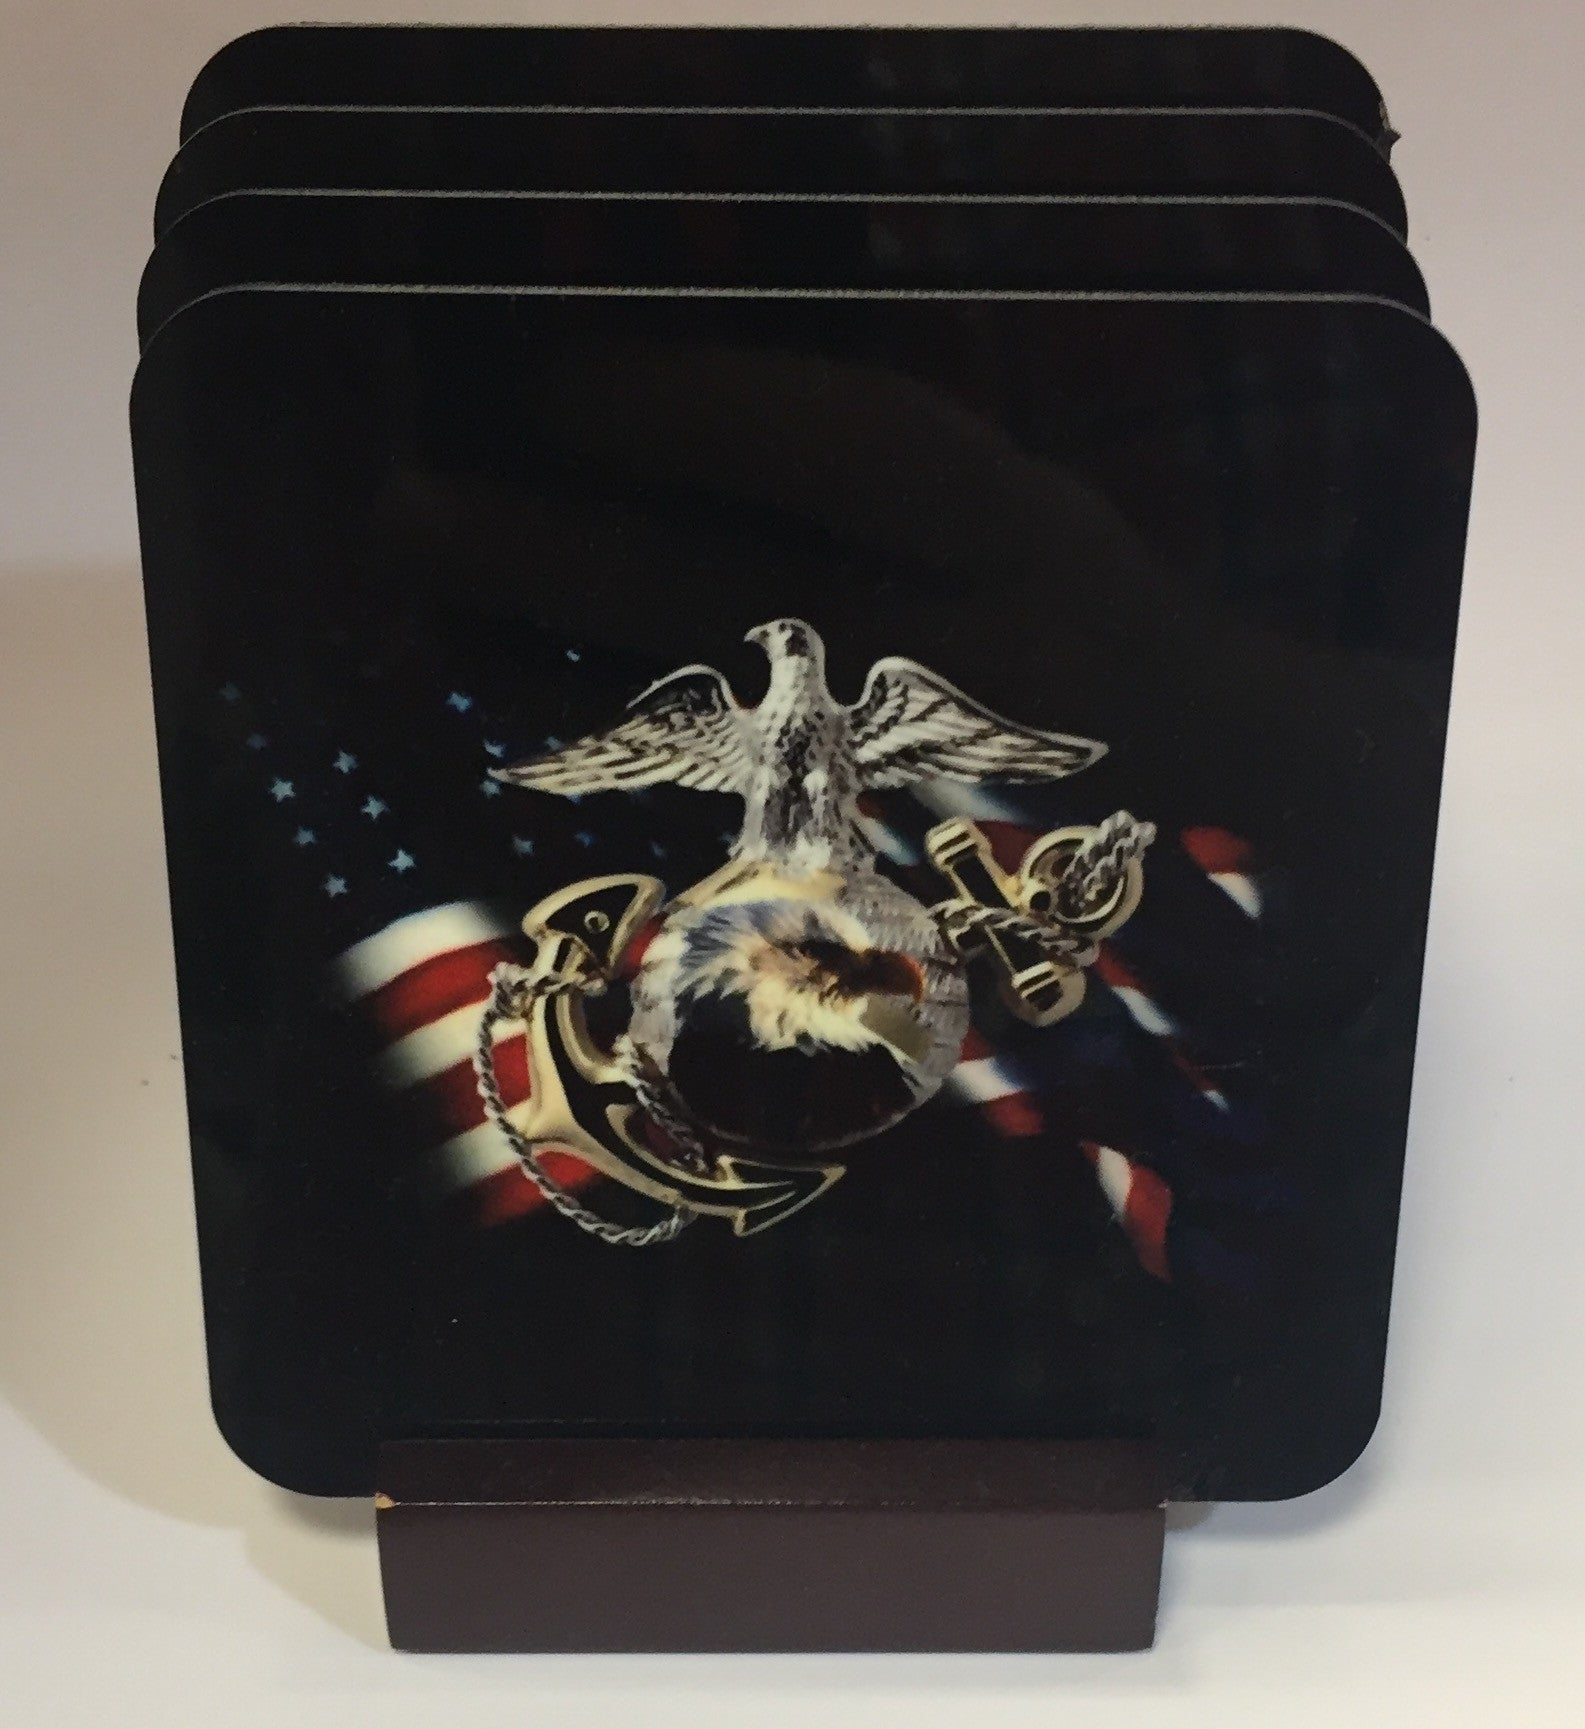 USMC - U.S. Marines Coasters - Set of 4 (with Mahogany Display Stand)